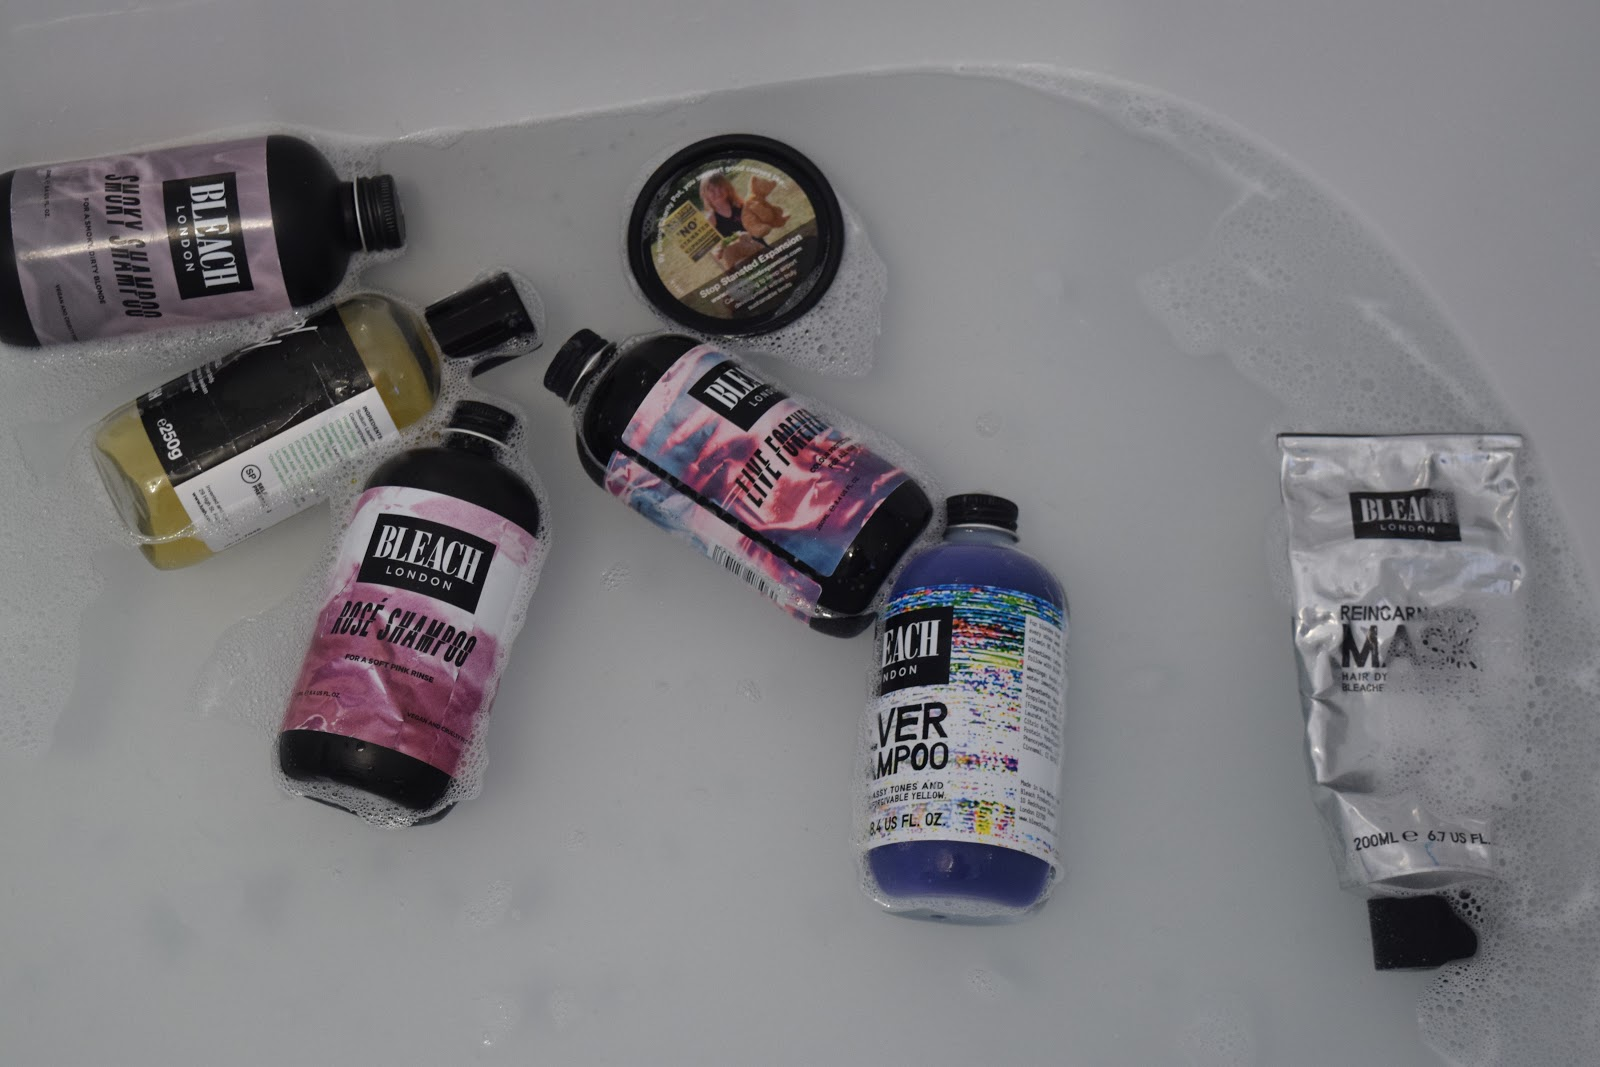 Bleach London and Lush products floating in the bath